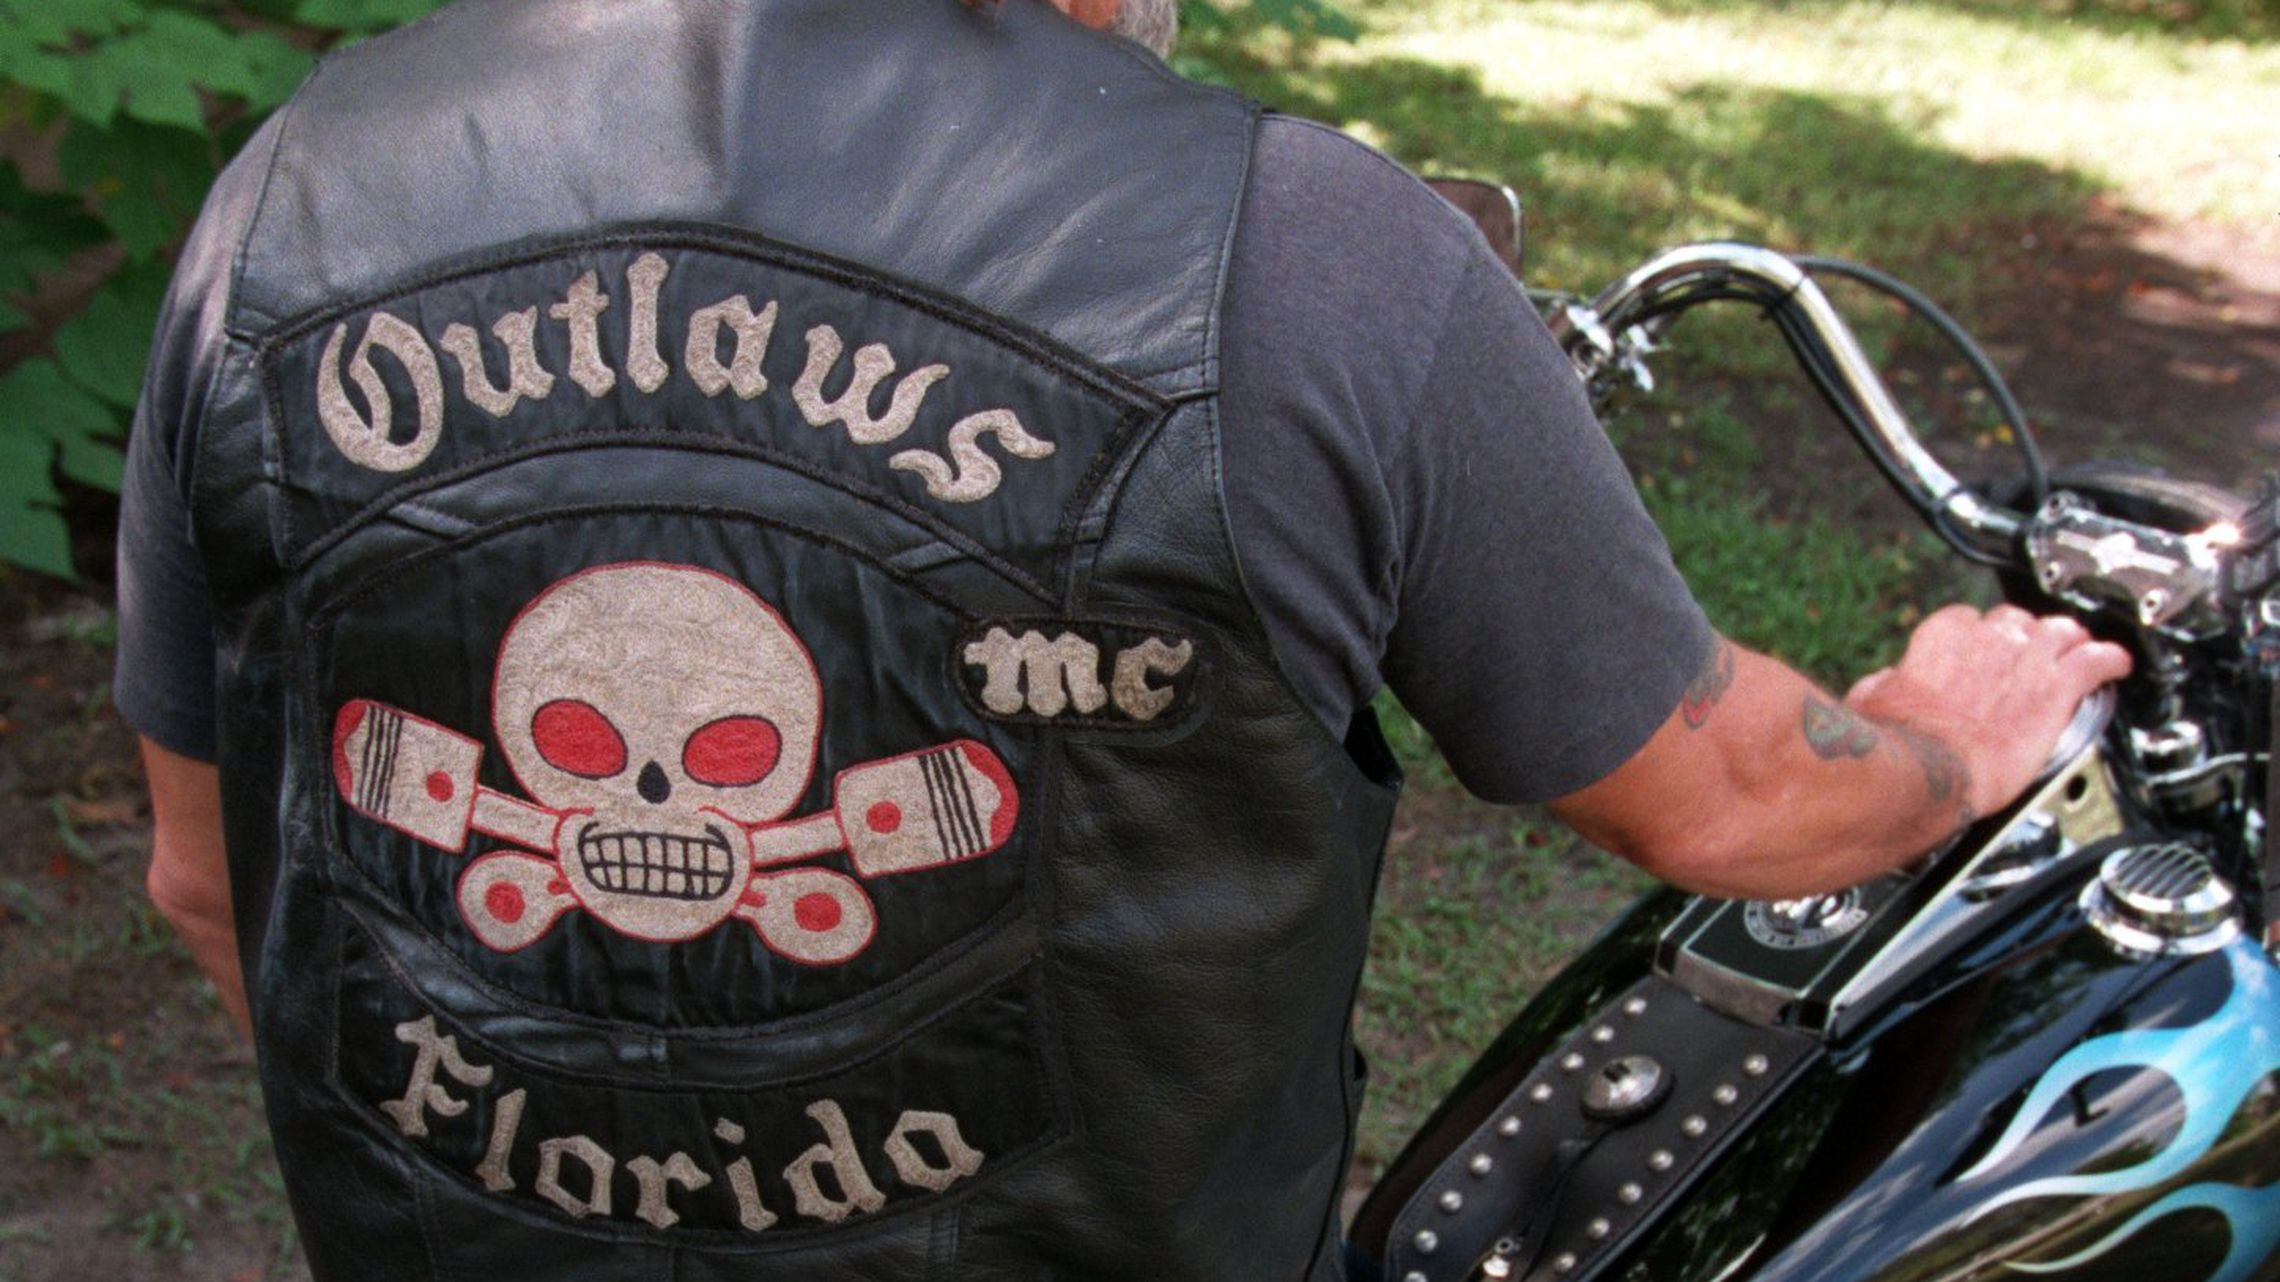 An Outlaws motorcycle club leader's assassination adds to